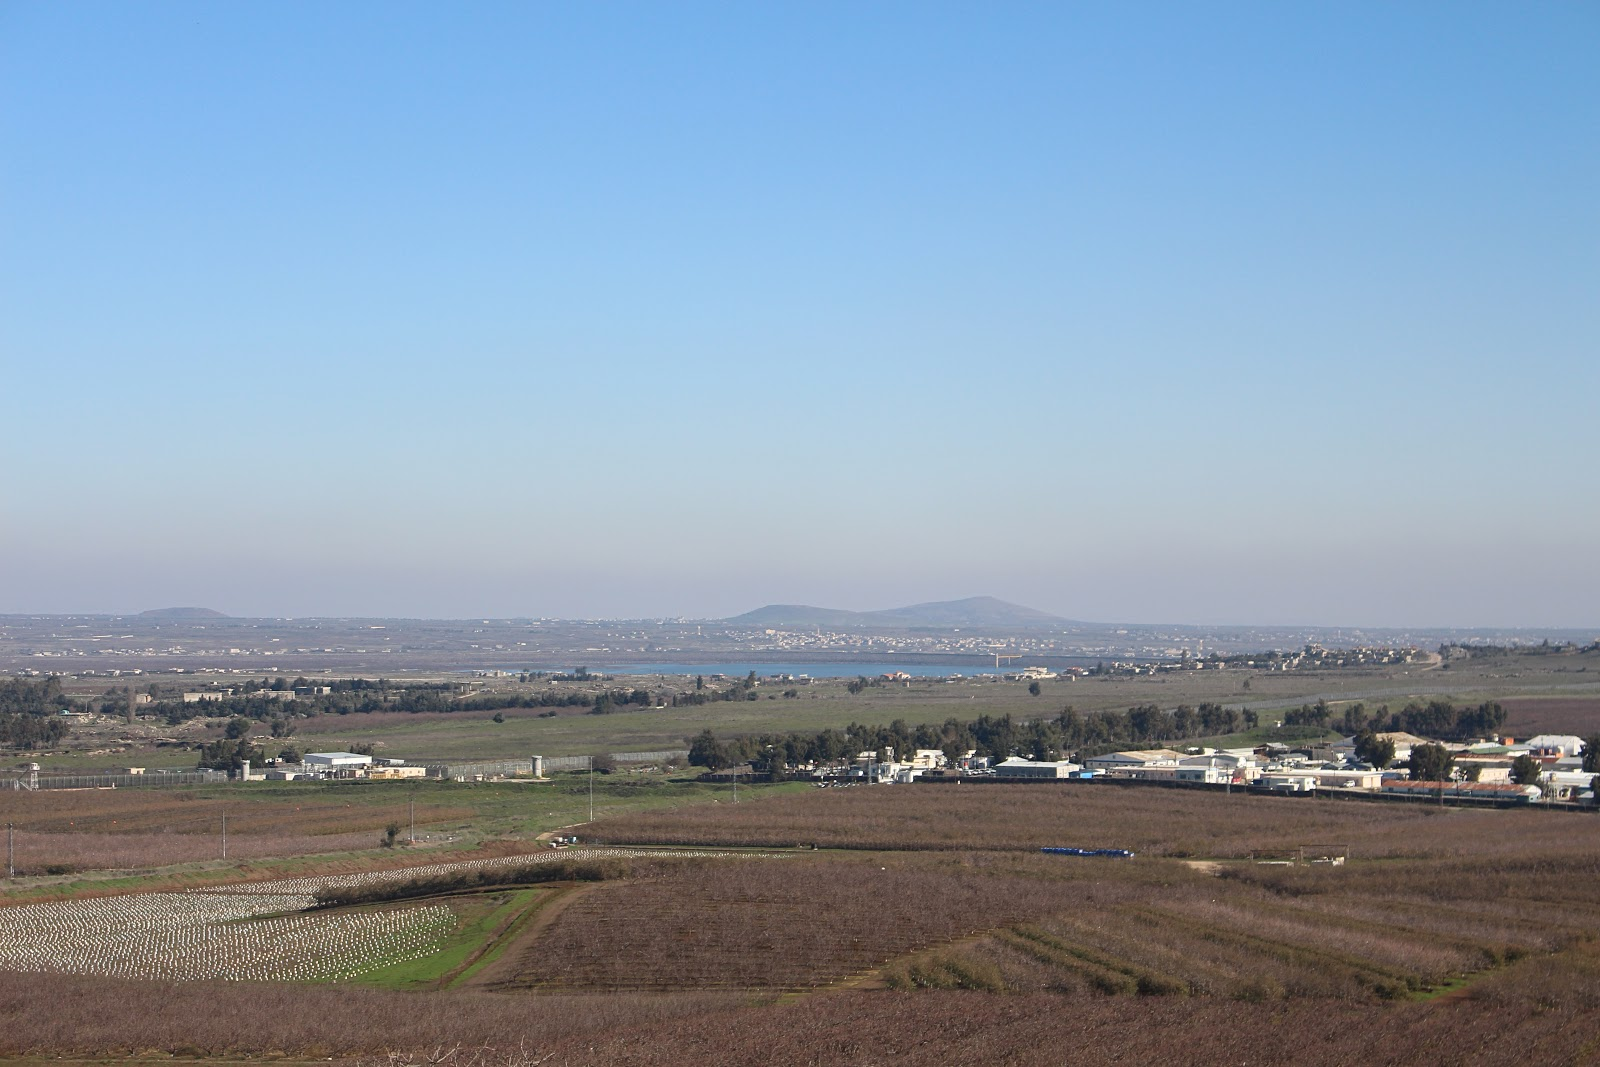 Israel Pilgrimage: Things To Do in Israel